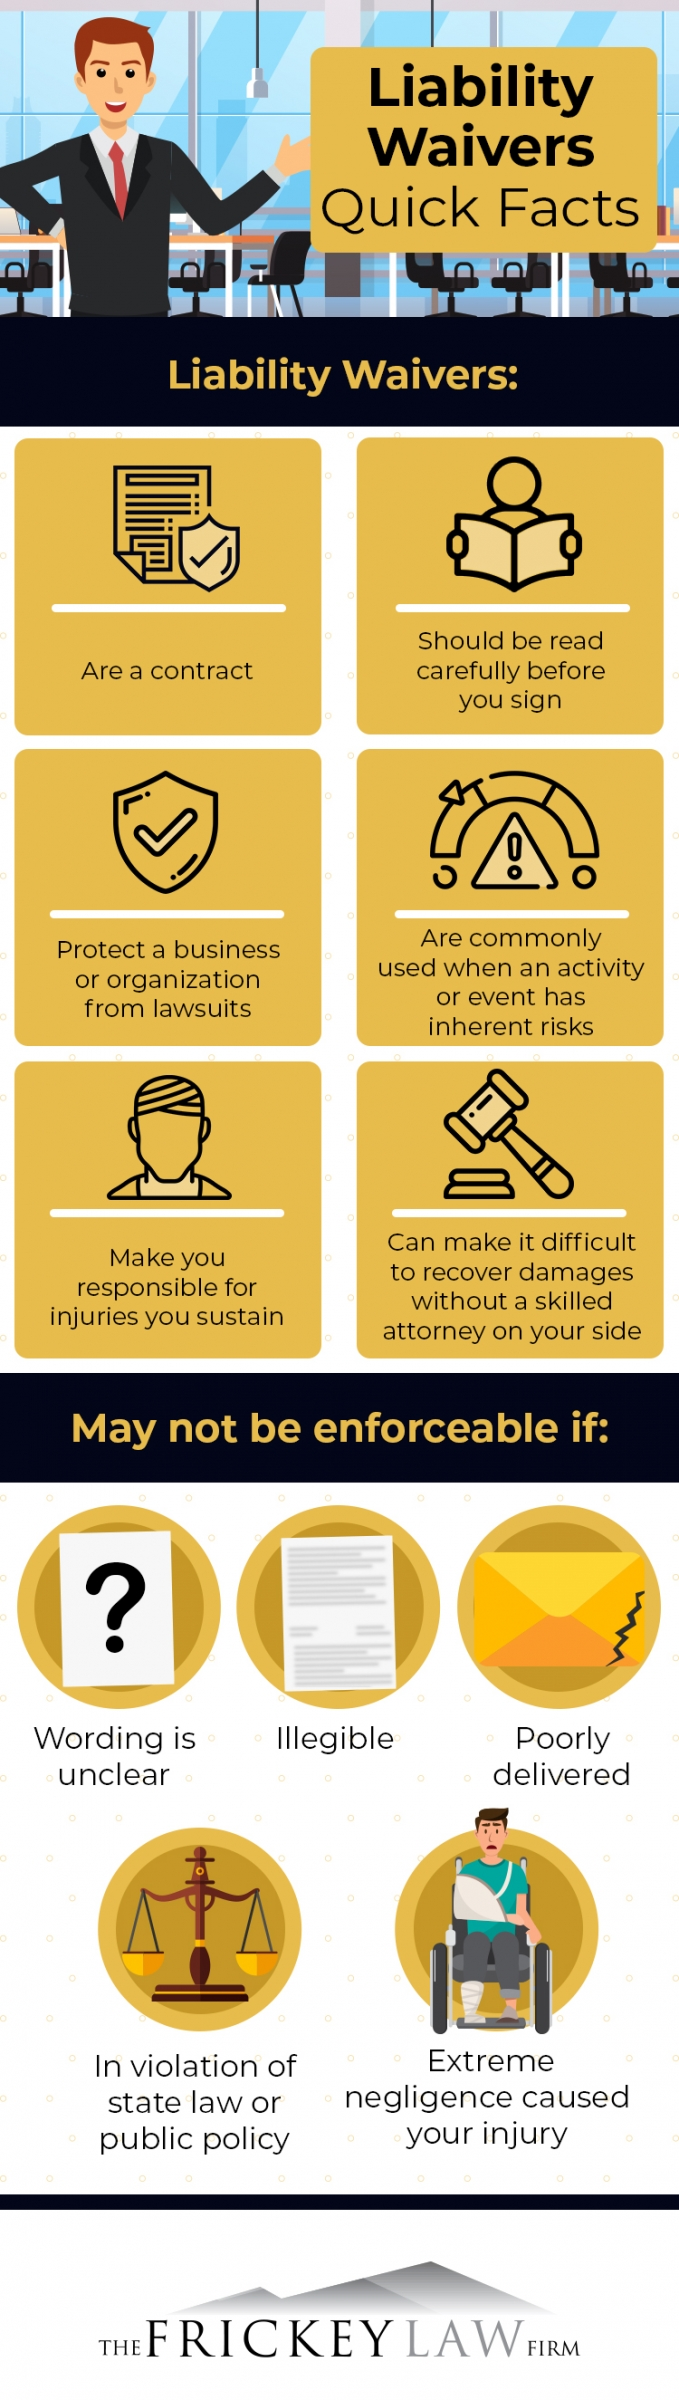 infographic highlighting important facts about liability waivers